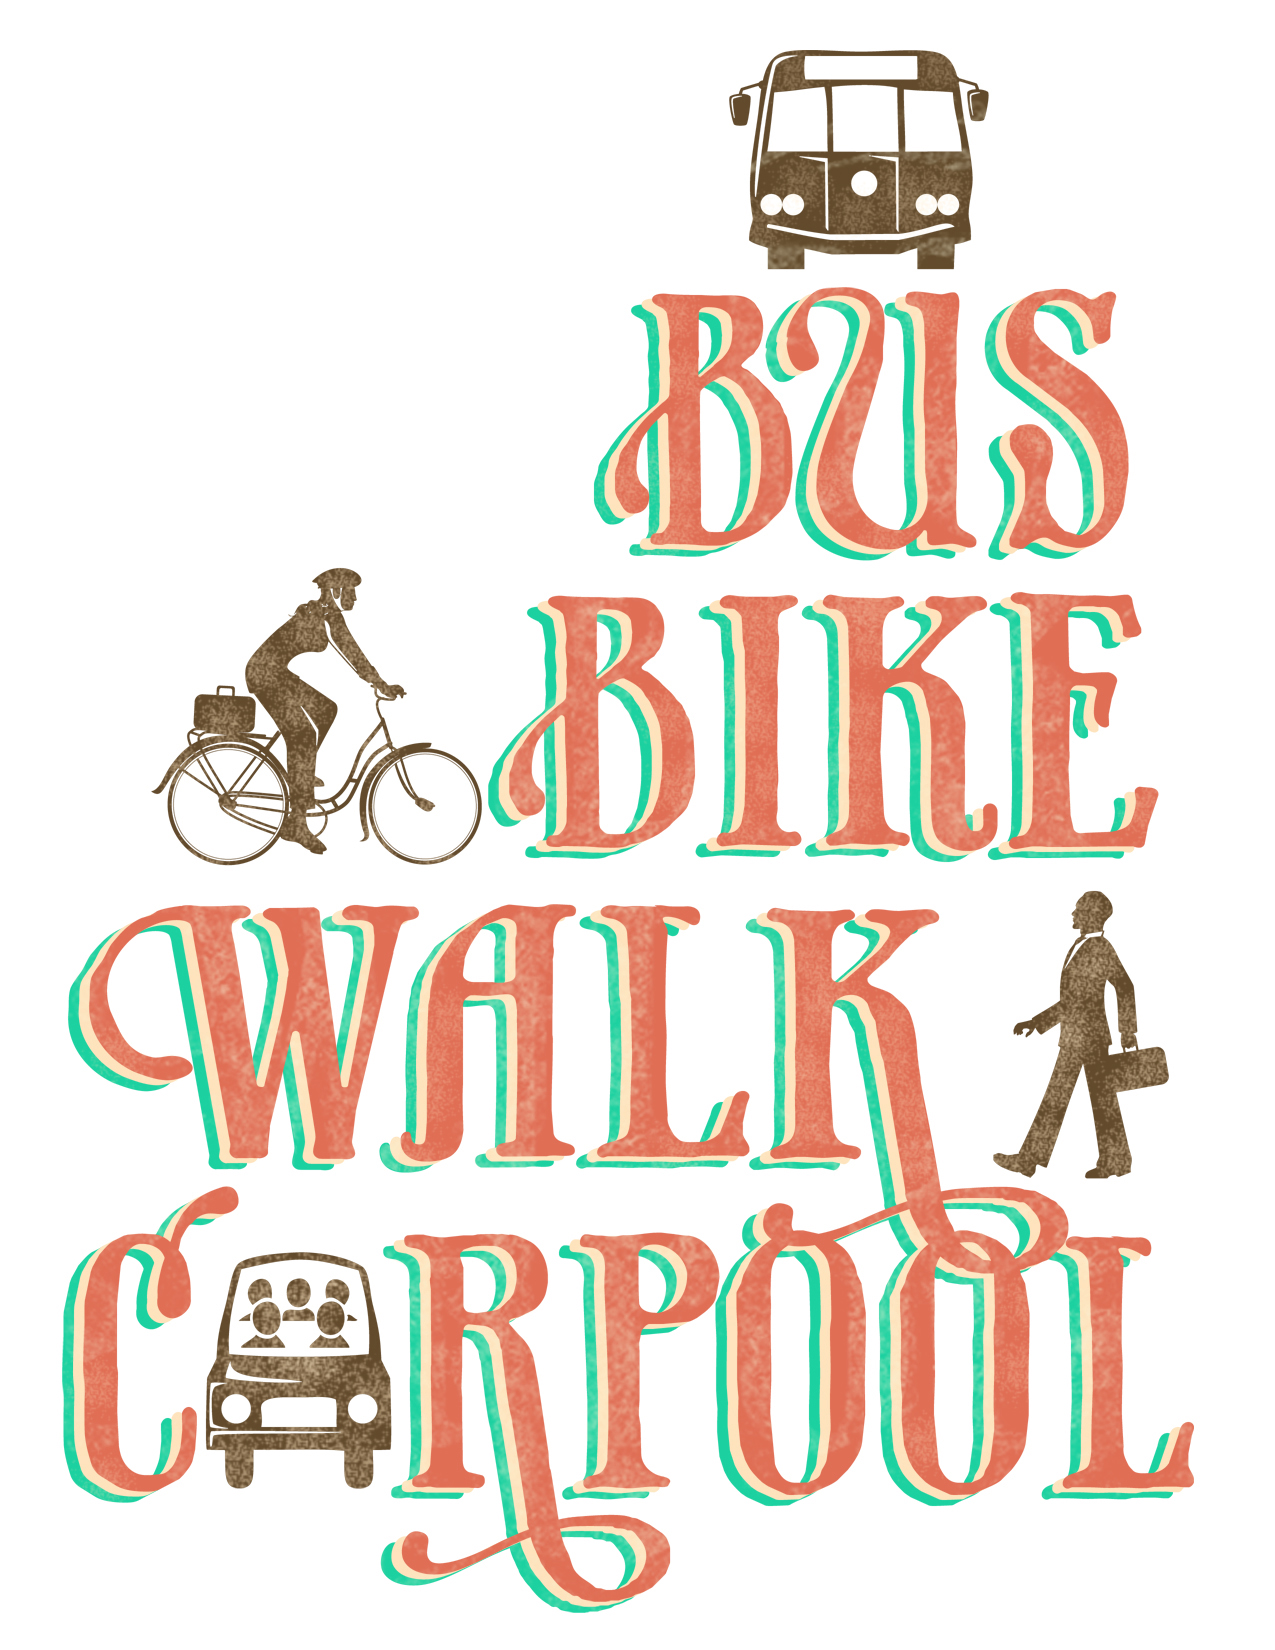 Bus, Bike, Walk, Carpool graphic